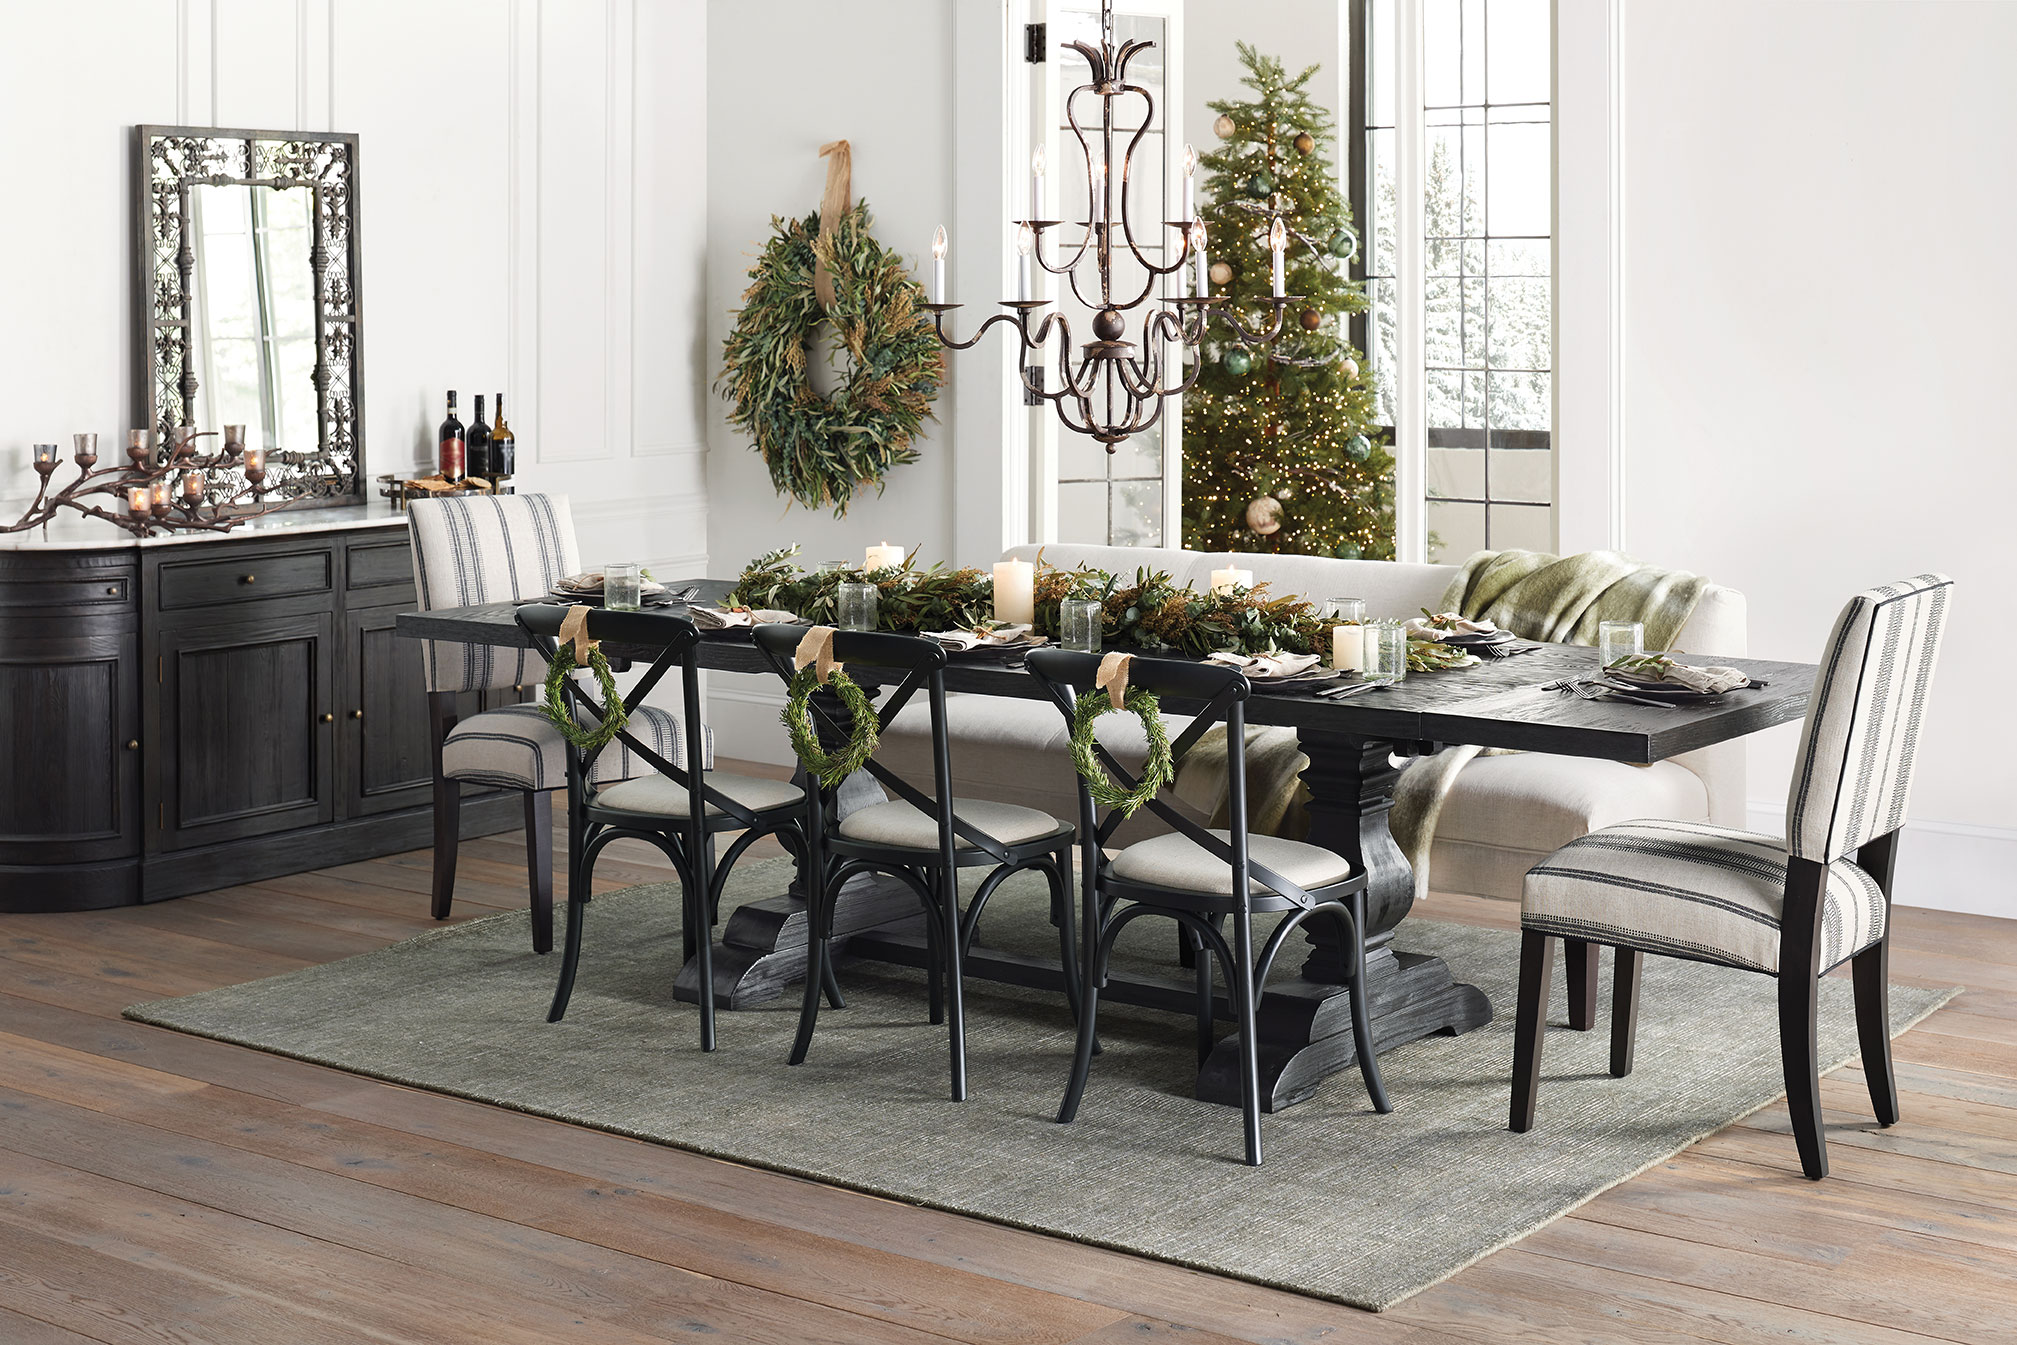 Make It Merry With Arhaus Home And Holiday